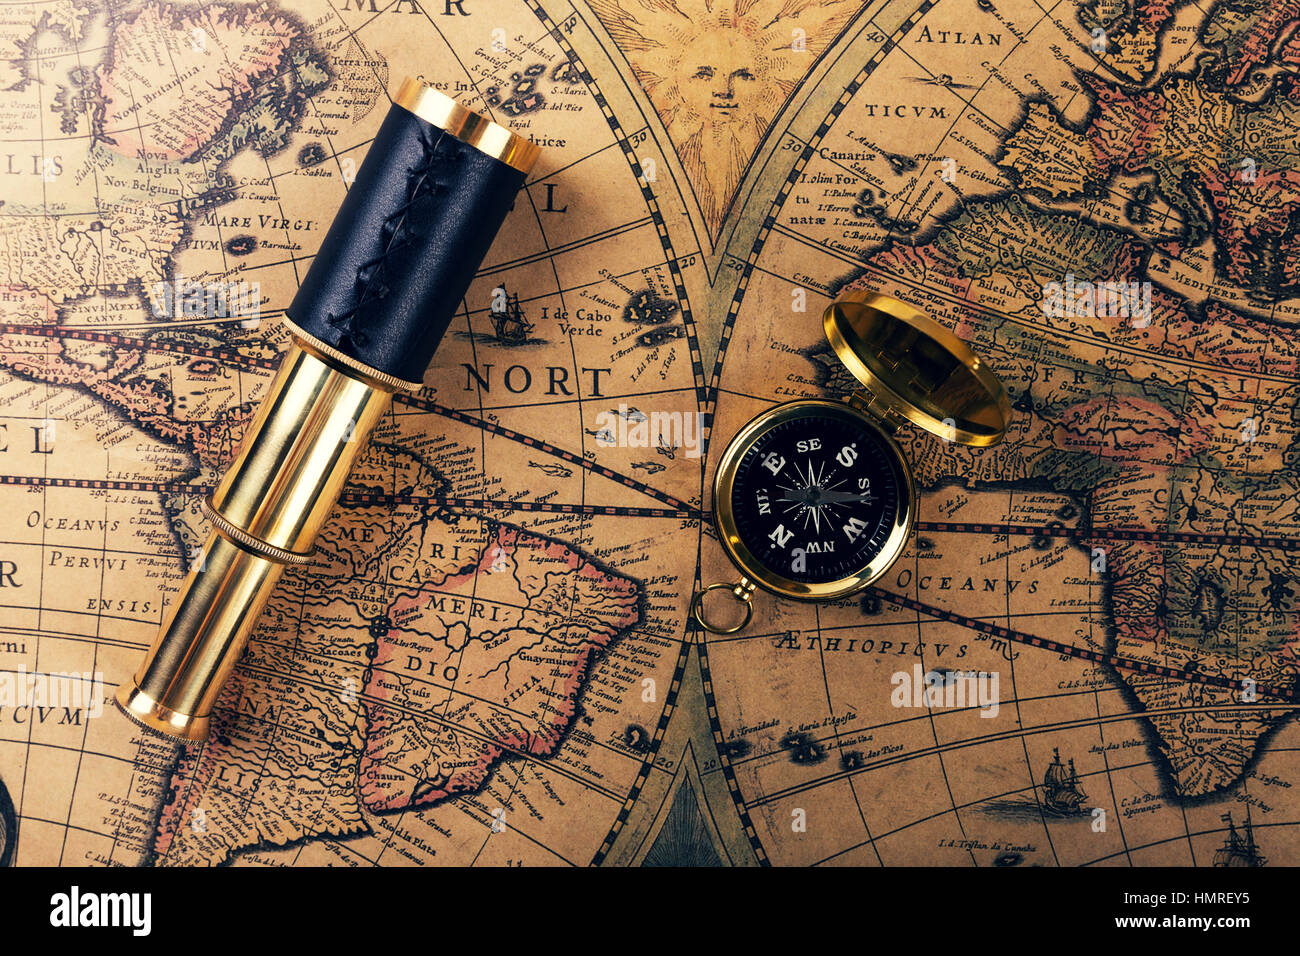 Vintage compass and spyglass on ancient world map stock photo vintage compass and spyglass on ancient world map sciox Gallery